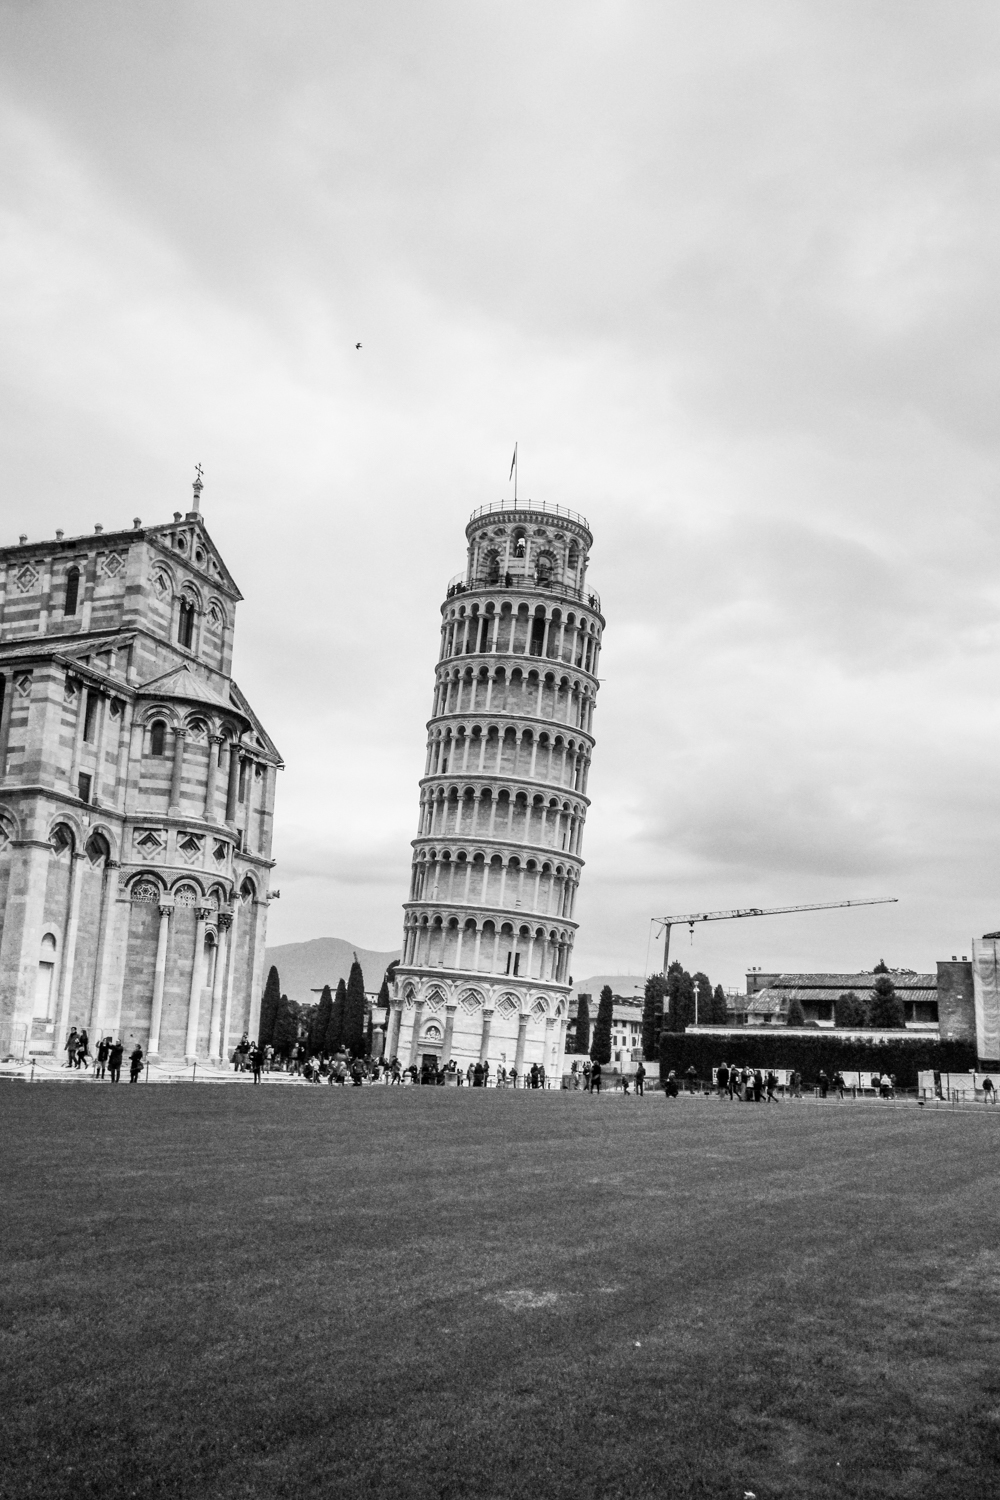 Pisa Italy | How Far From Home